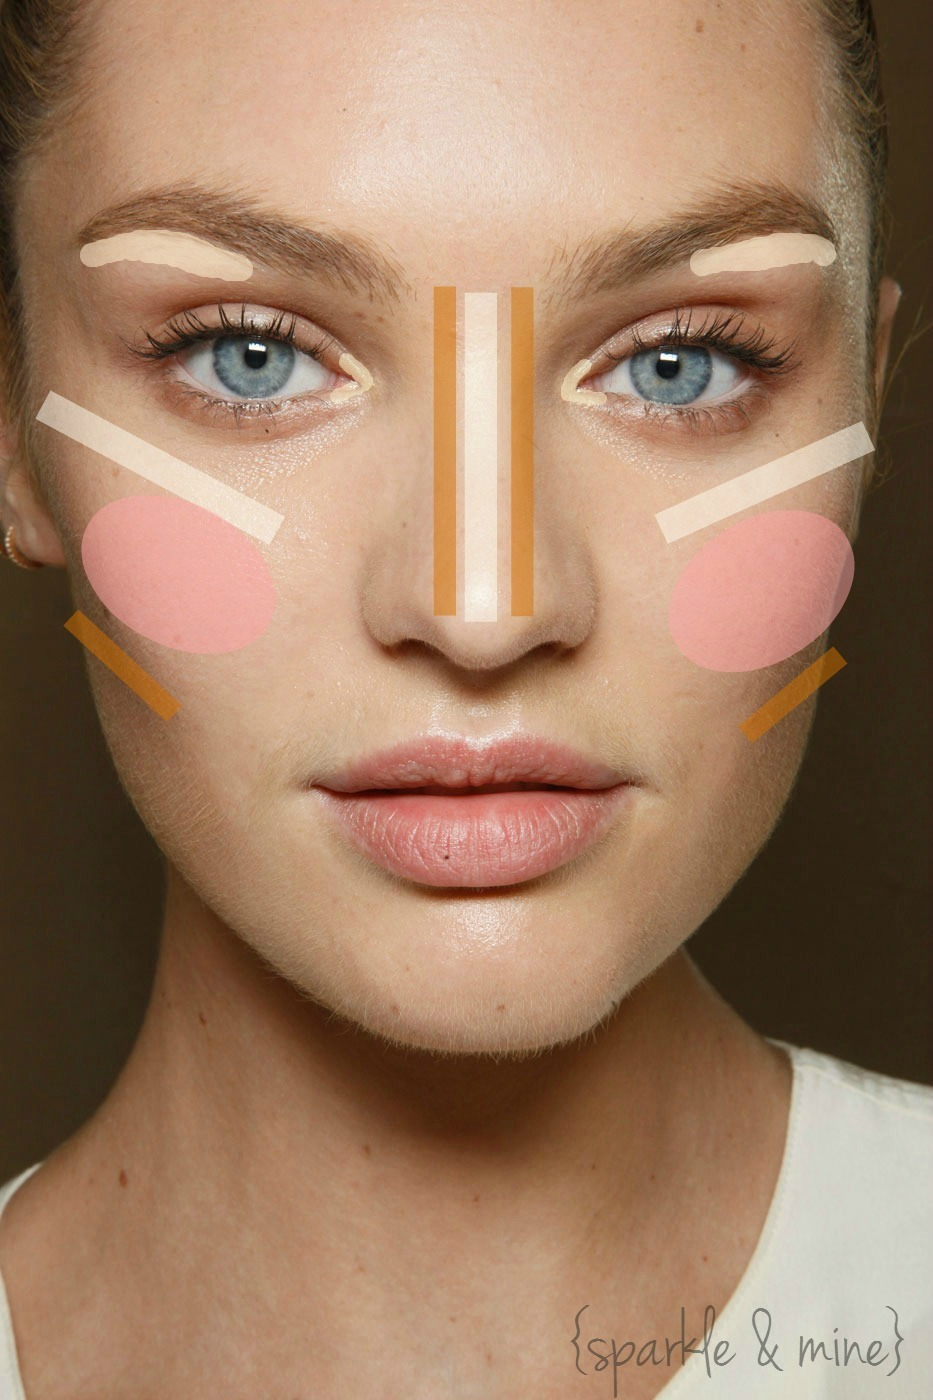 depending on the shape of your face, if you have a round face, blend the blush up towards your temples.